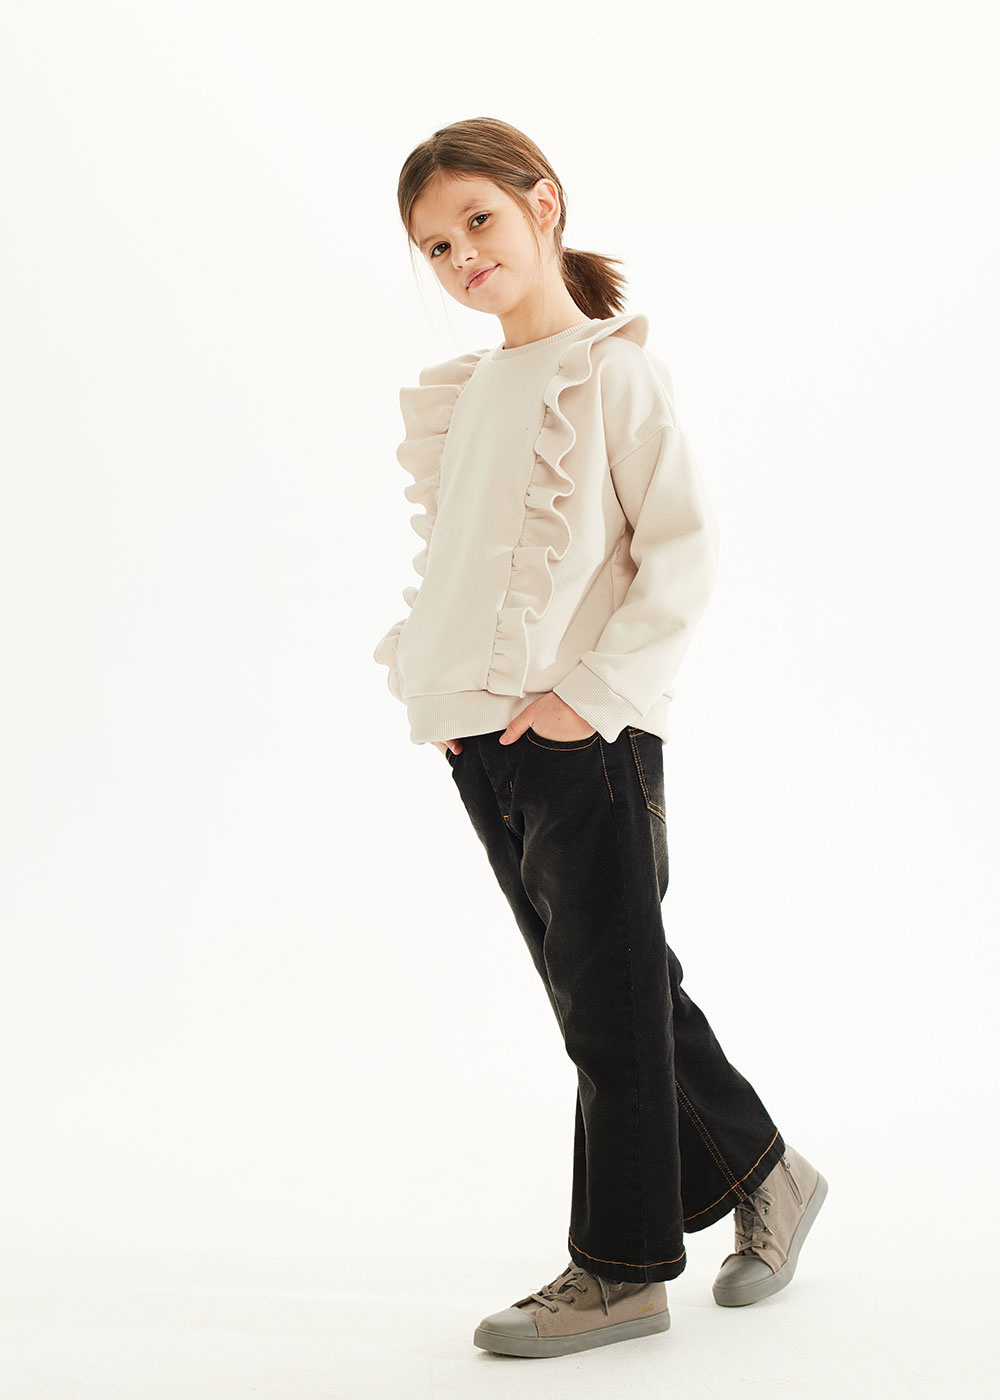 Kids on the moon Black stone wide denims